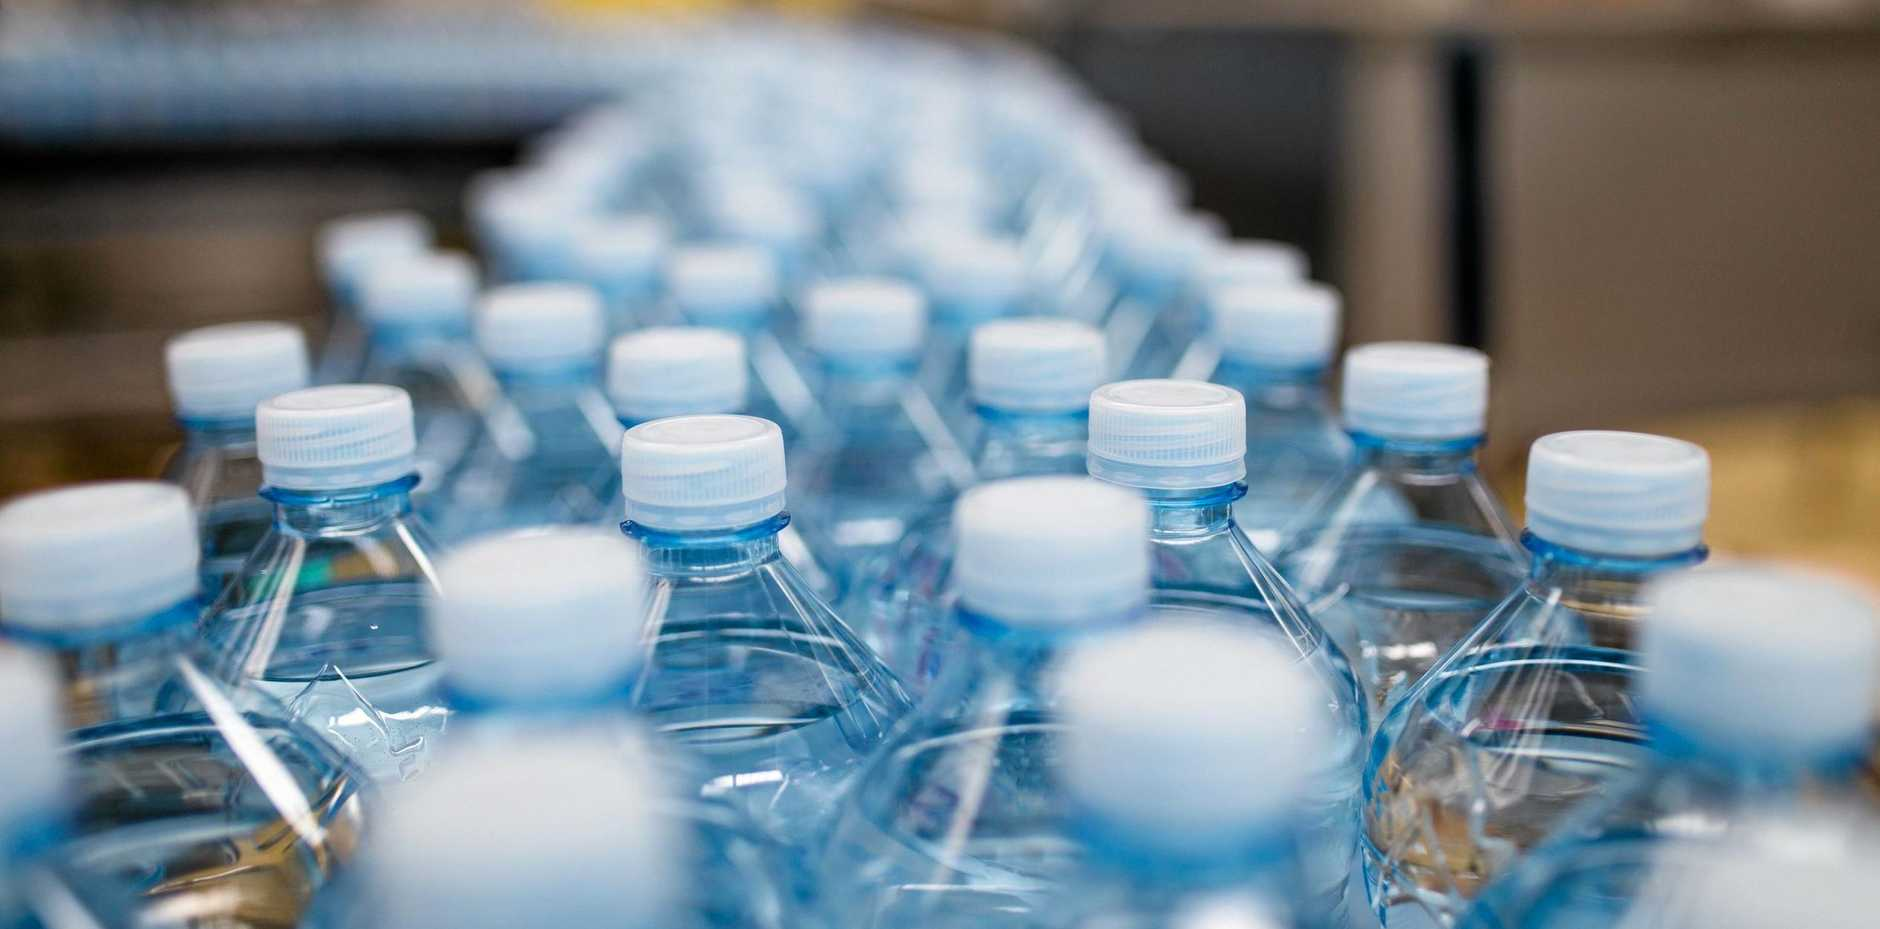 The safety of bottled water has been called into question.